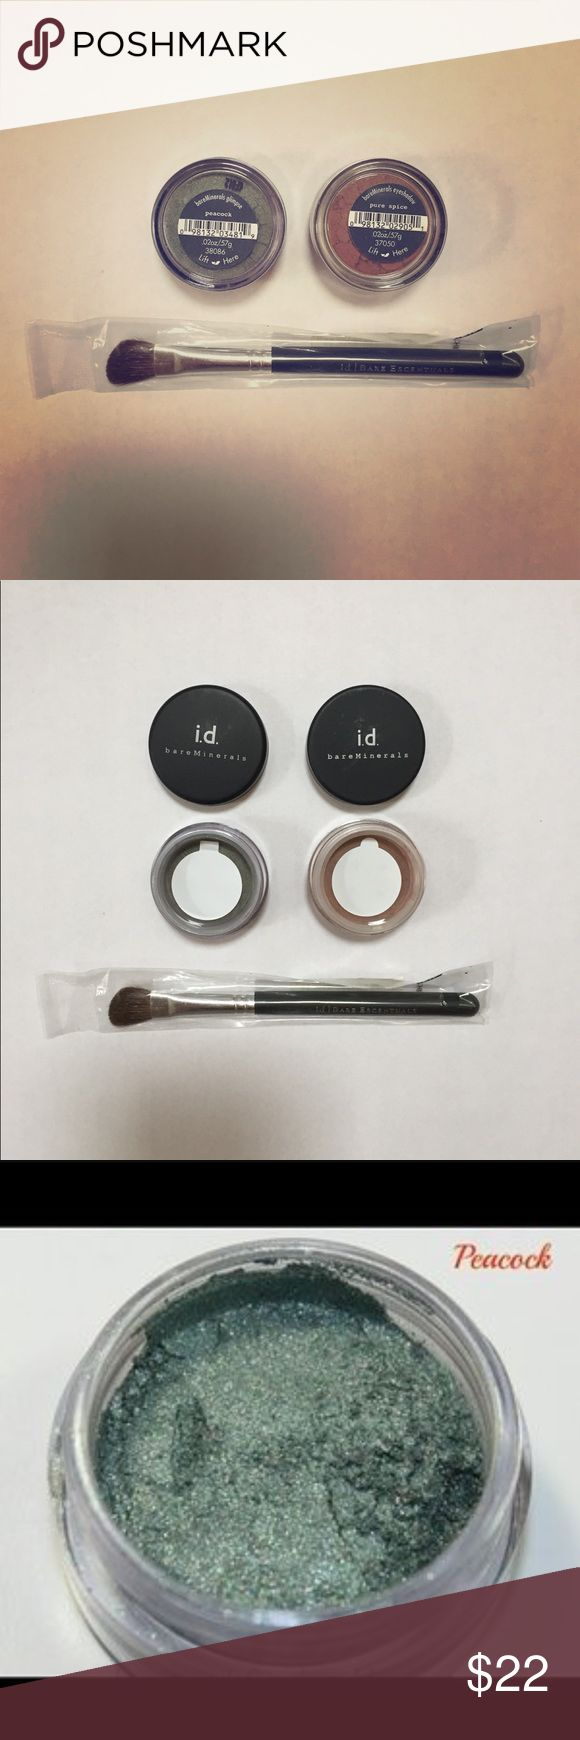 bareMinerals Eyeshadows and Brush bareMinerals eyeshadows in peacock (sparkly deep green) and pure spice (cocoa color). Also included is the eye defining brush to help provide smooth application and build color intensity. Brush alone is worth $18. All items are sealed and unopened (extra pictures provided to show color). Price is for the set. bareMinerals Makeup Eyeshadow